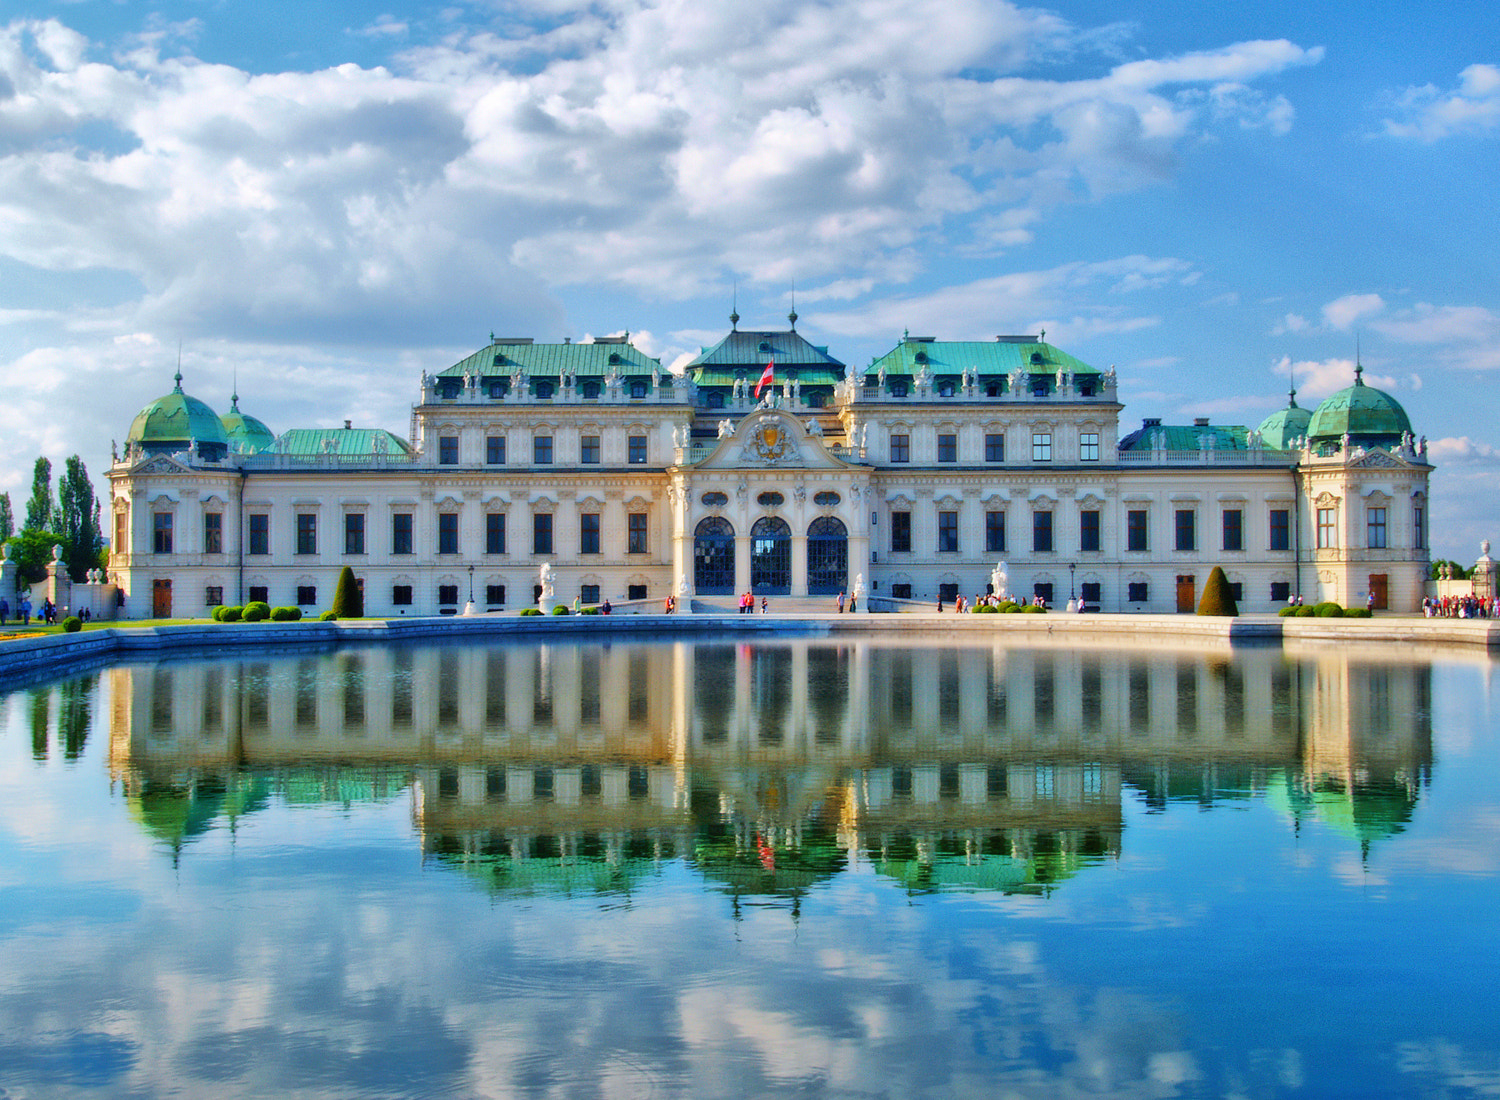 Photograph Belvedere Palace by Steve Daggar on 500px